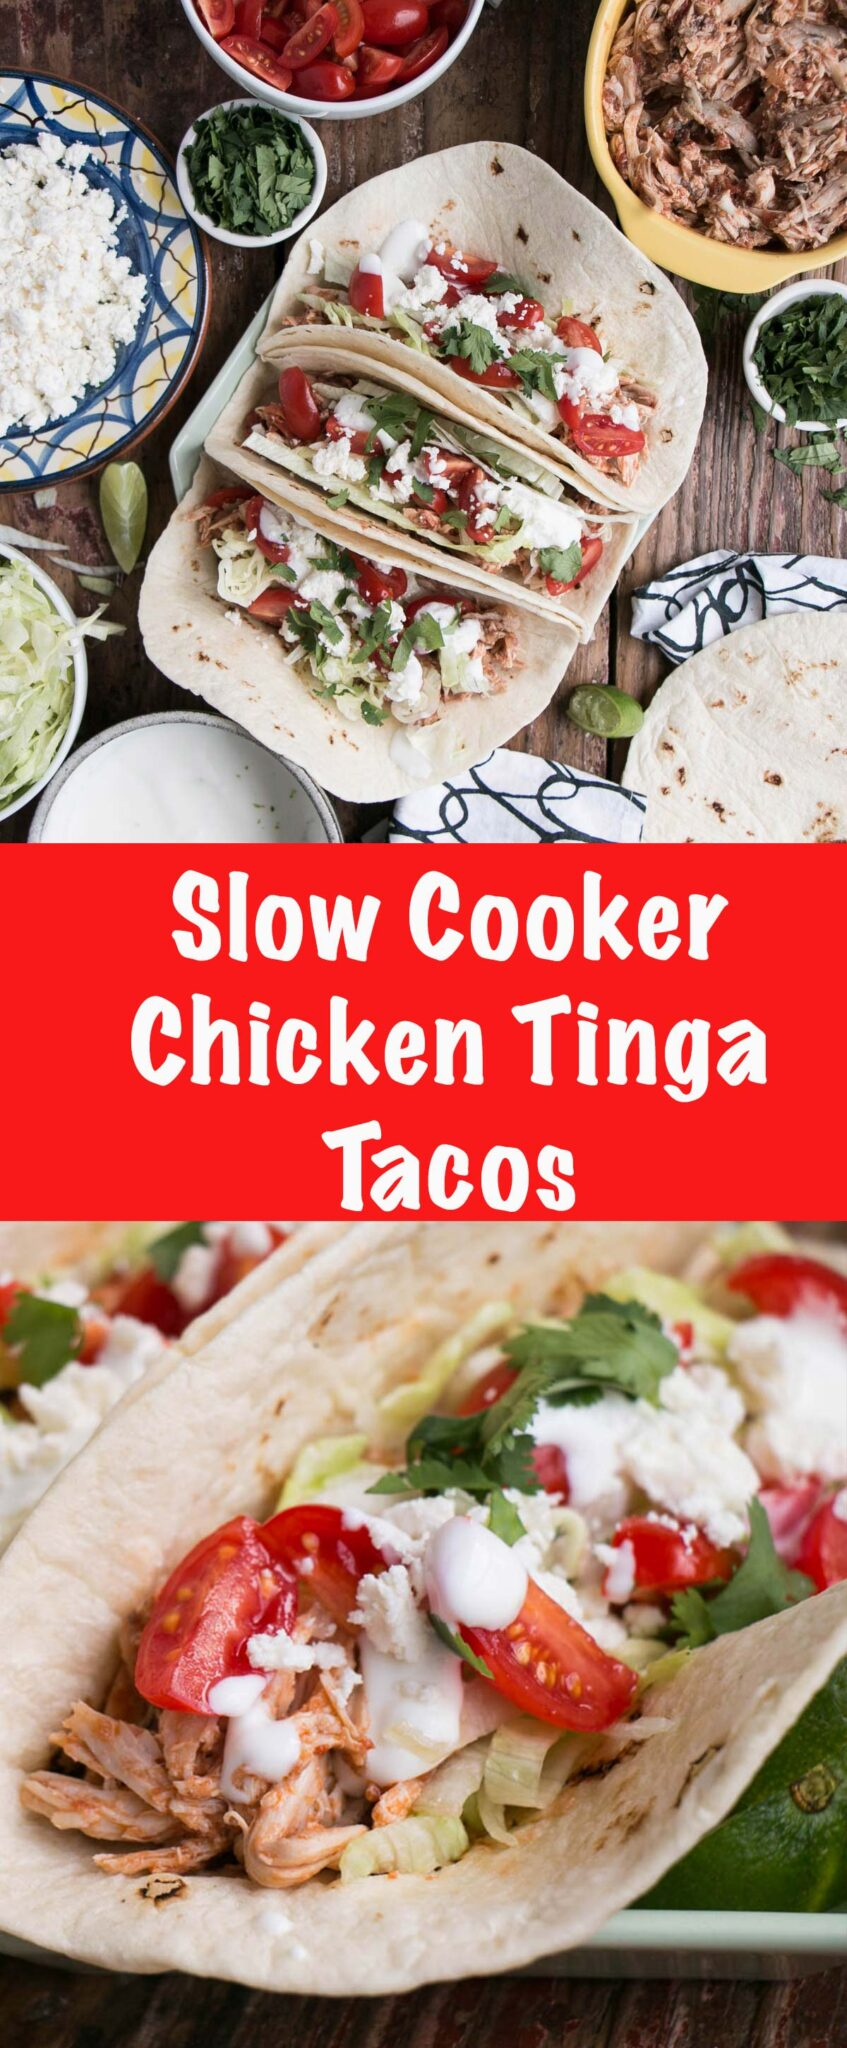 Slow Cooker Chicken Tinga Tacos are a delicious pulled chicken taco that comes together quickly in slow cooker! #slowcooker #chicken